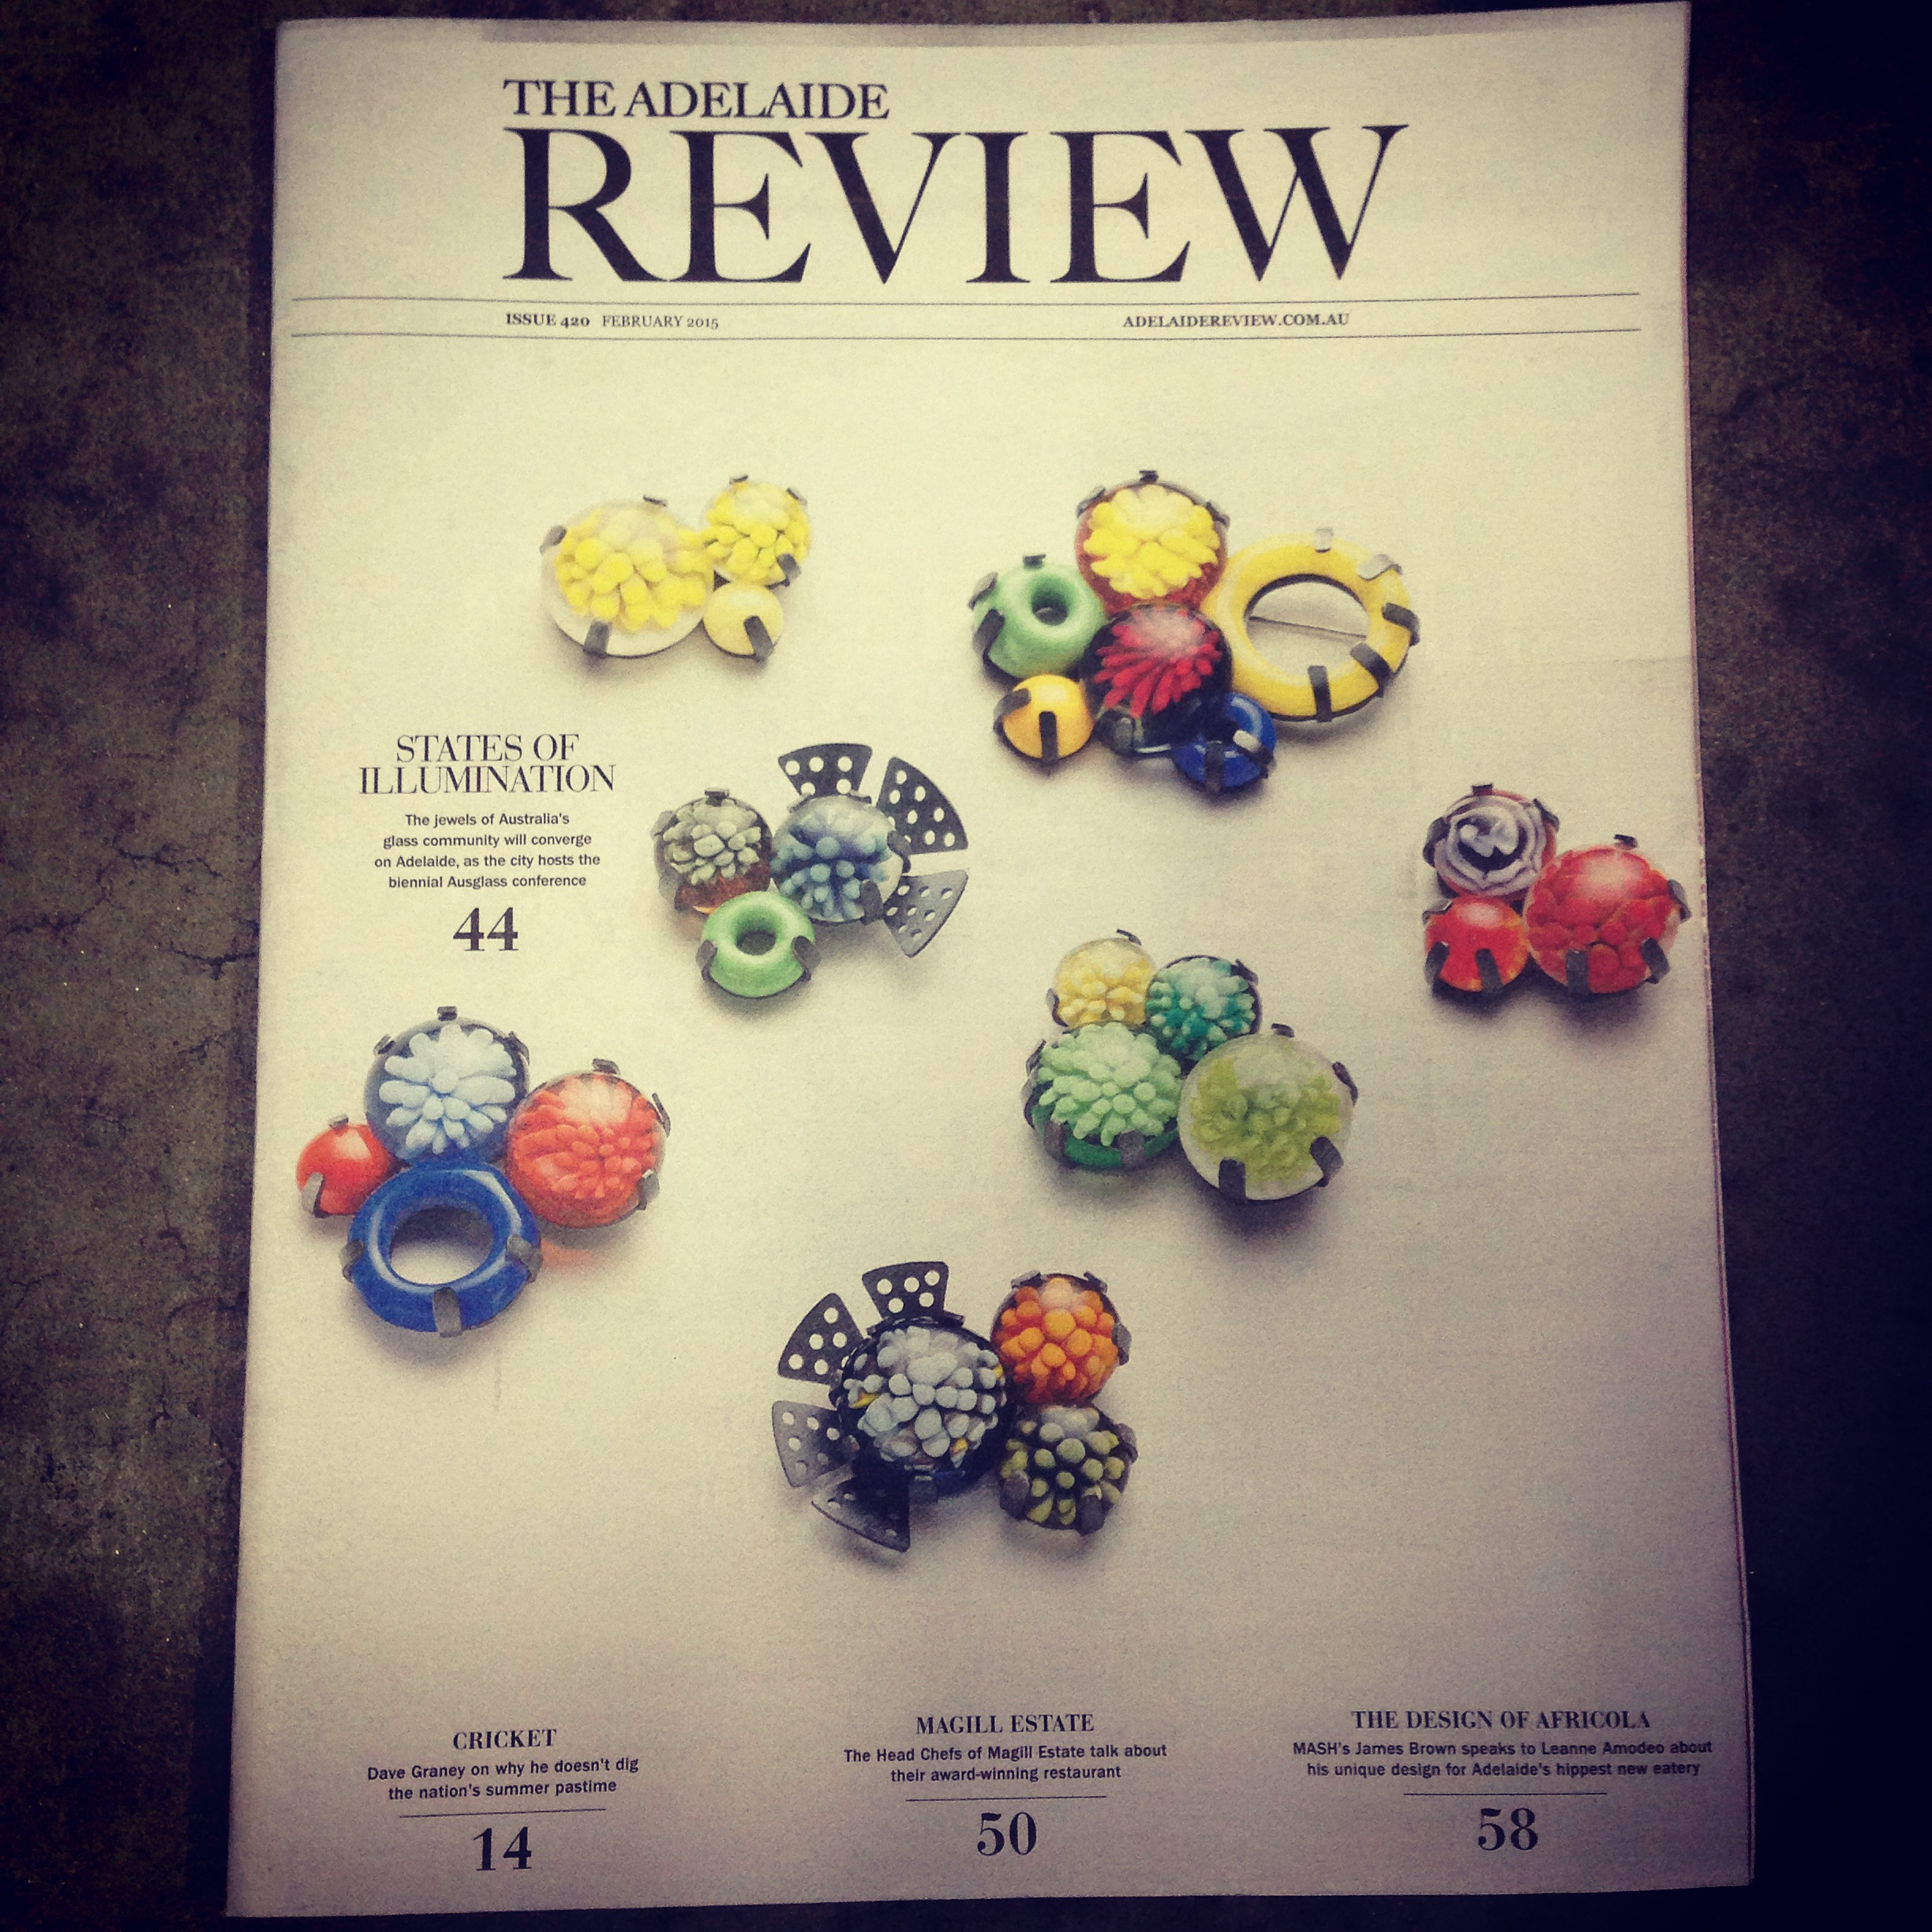 Cover of the Adelaide Review.jpeg